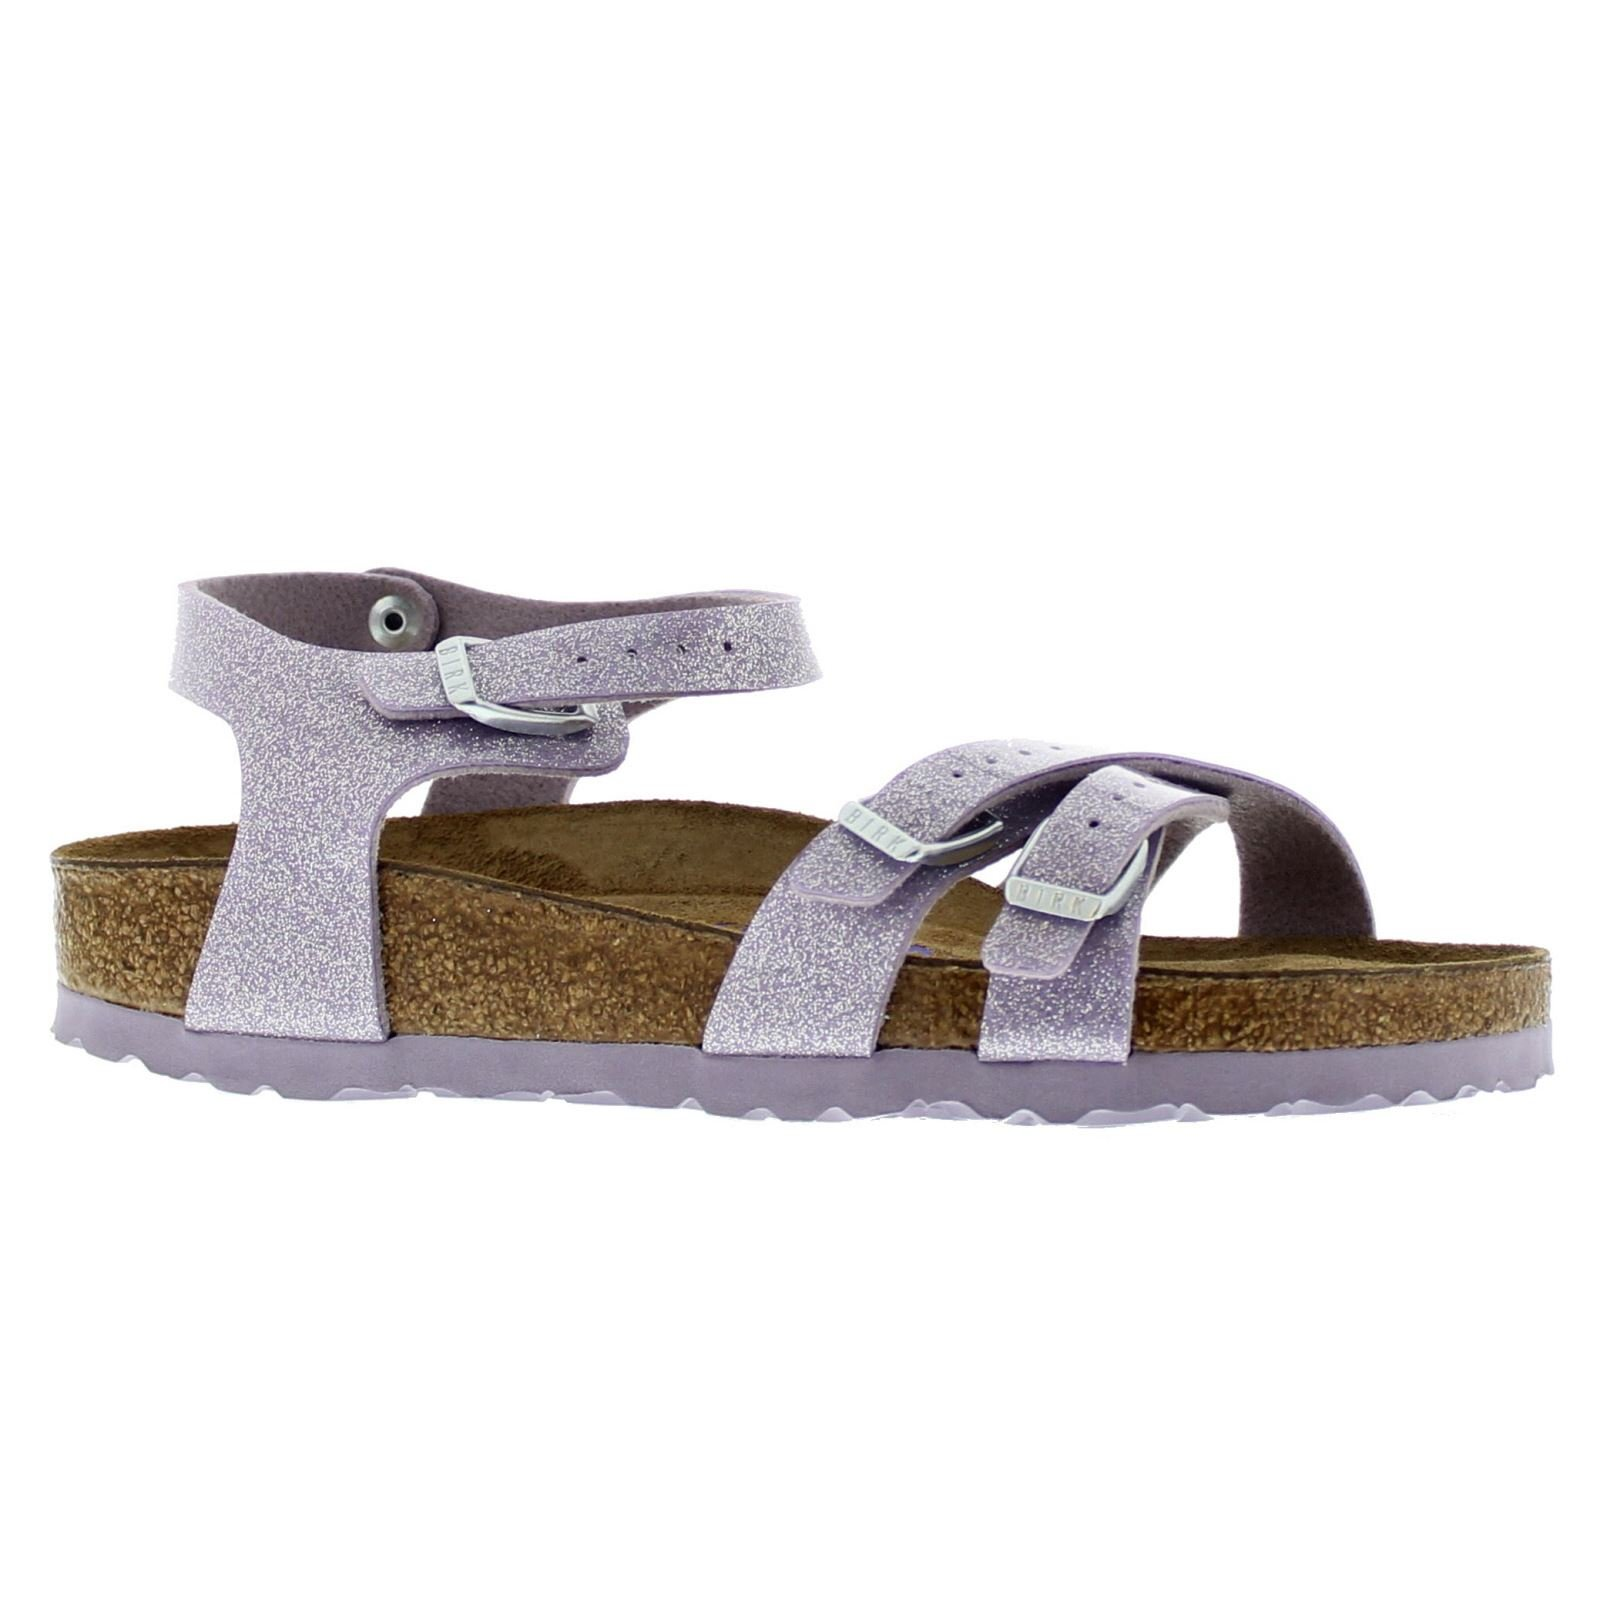 Birkenstock Womens Kumba Magic Galaxy Lavender Birko-Flor Sandals 41 EU by Birkenstock (Image #1)